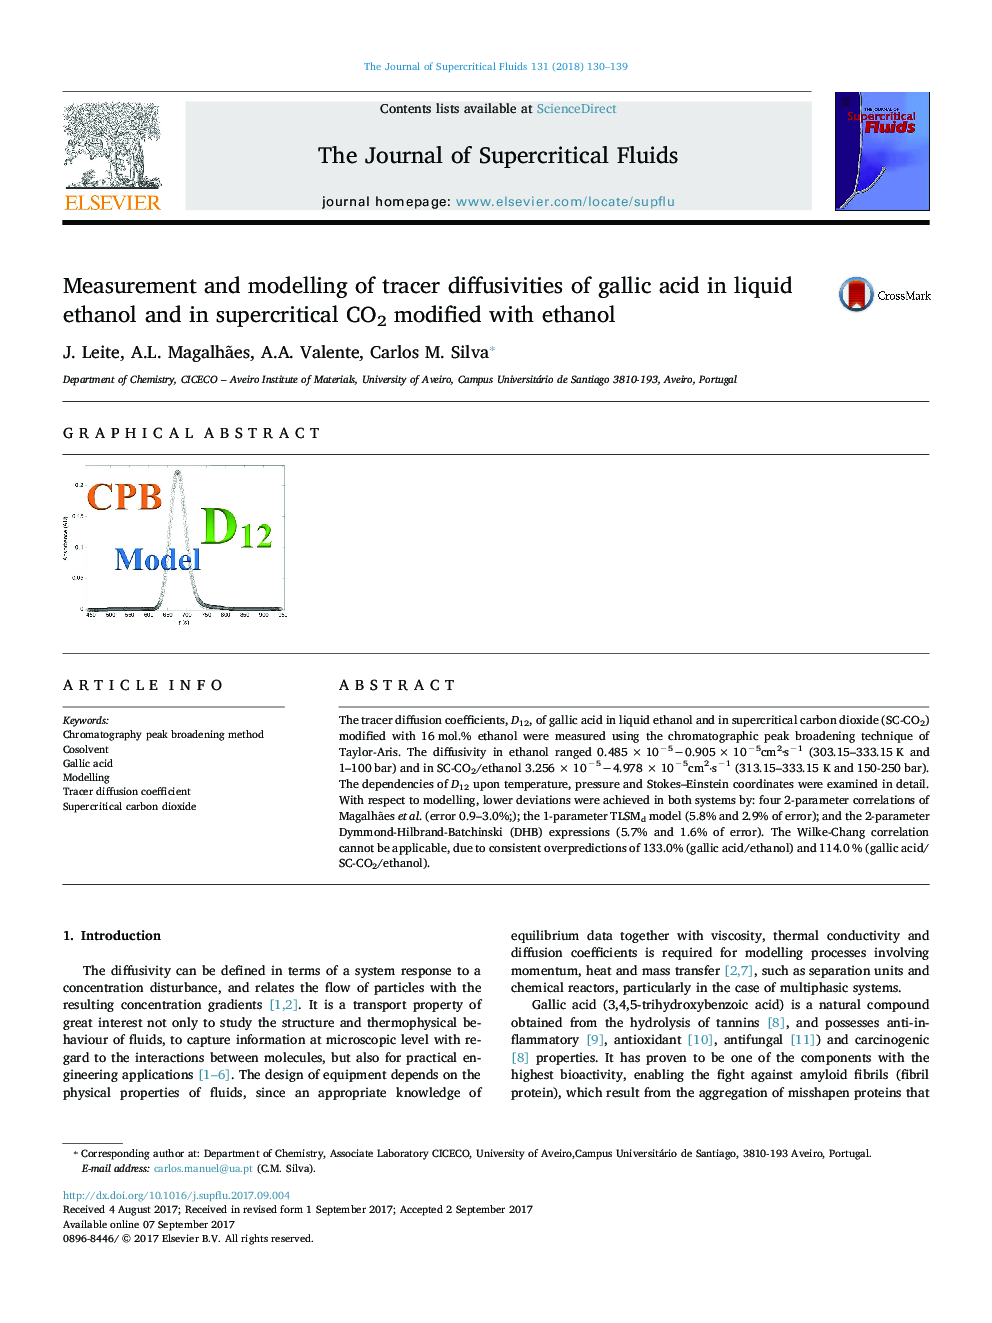 Measurement and modelling of tracer diffusivities of gallic acid in liquid ethanol and in supercritical CO2 modified with ethanol